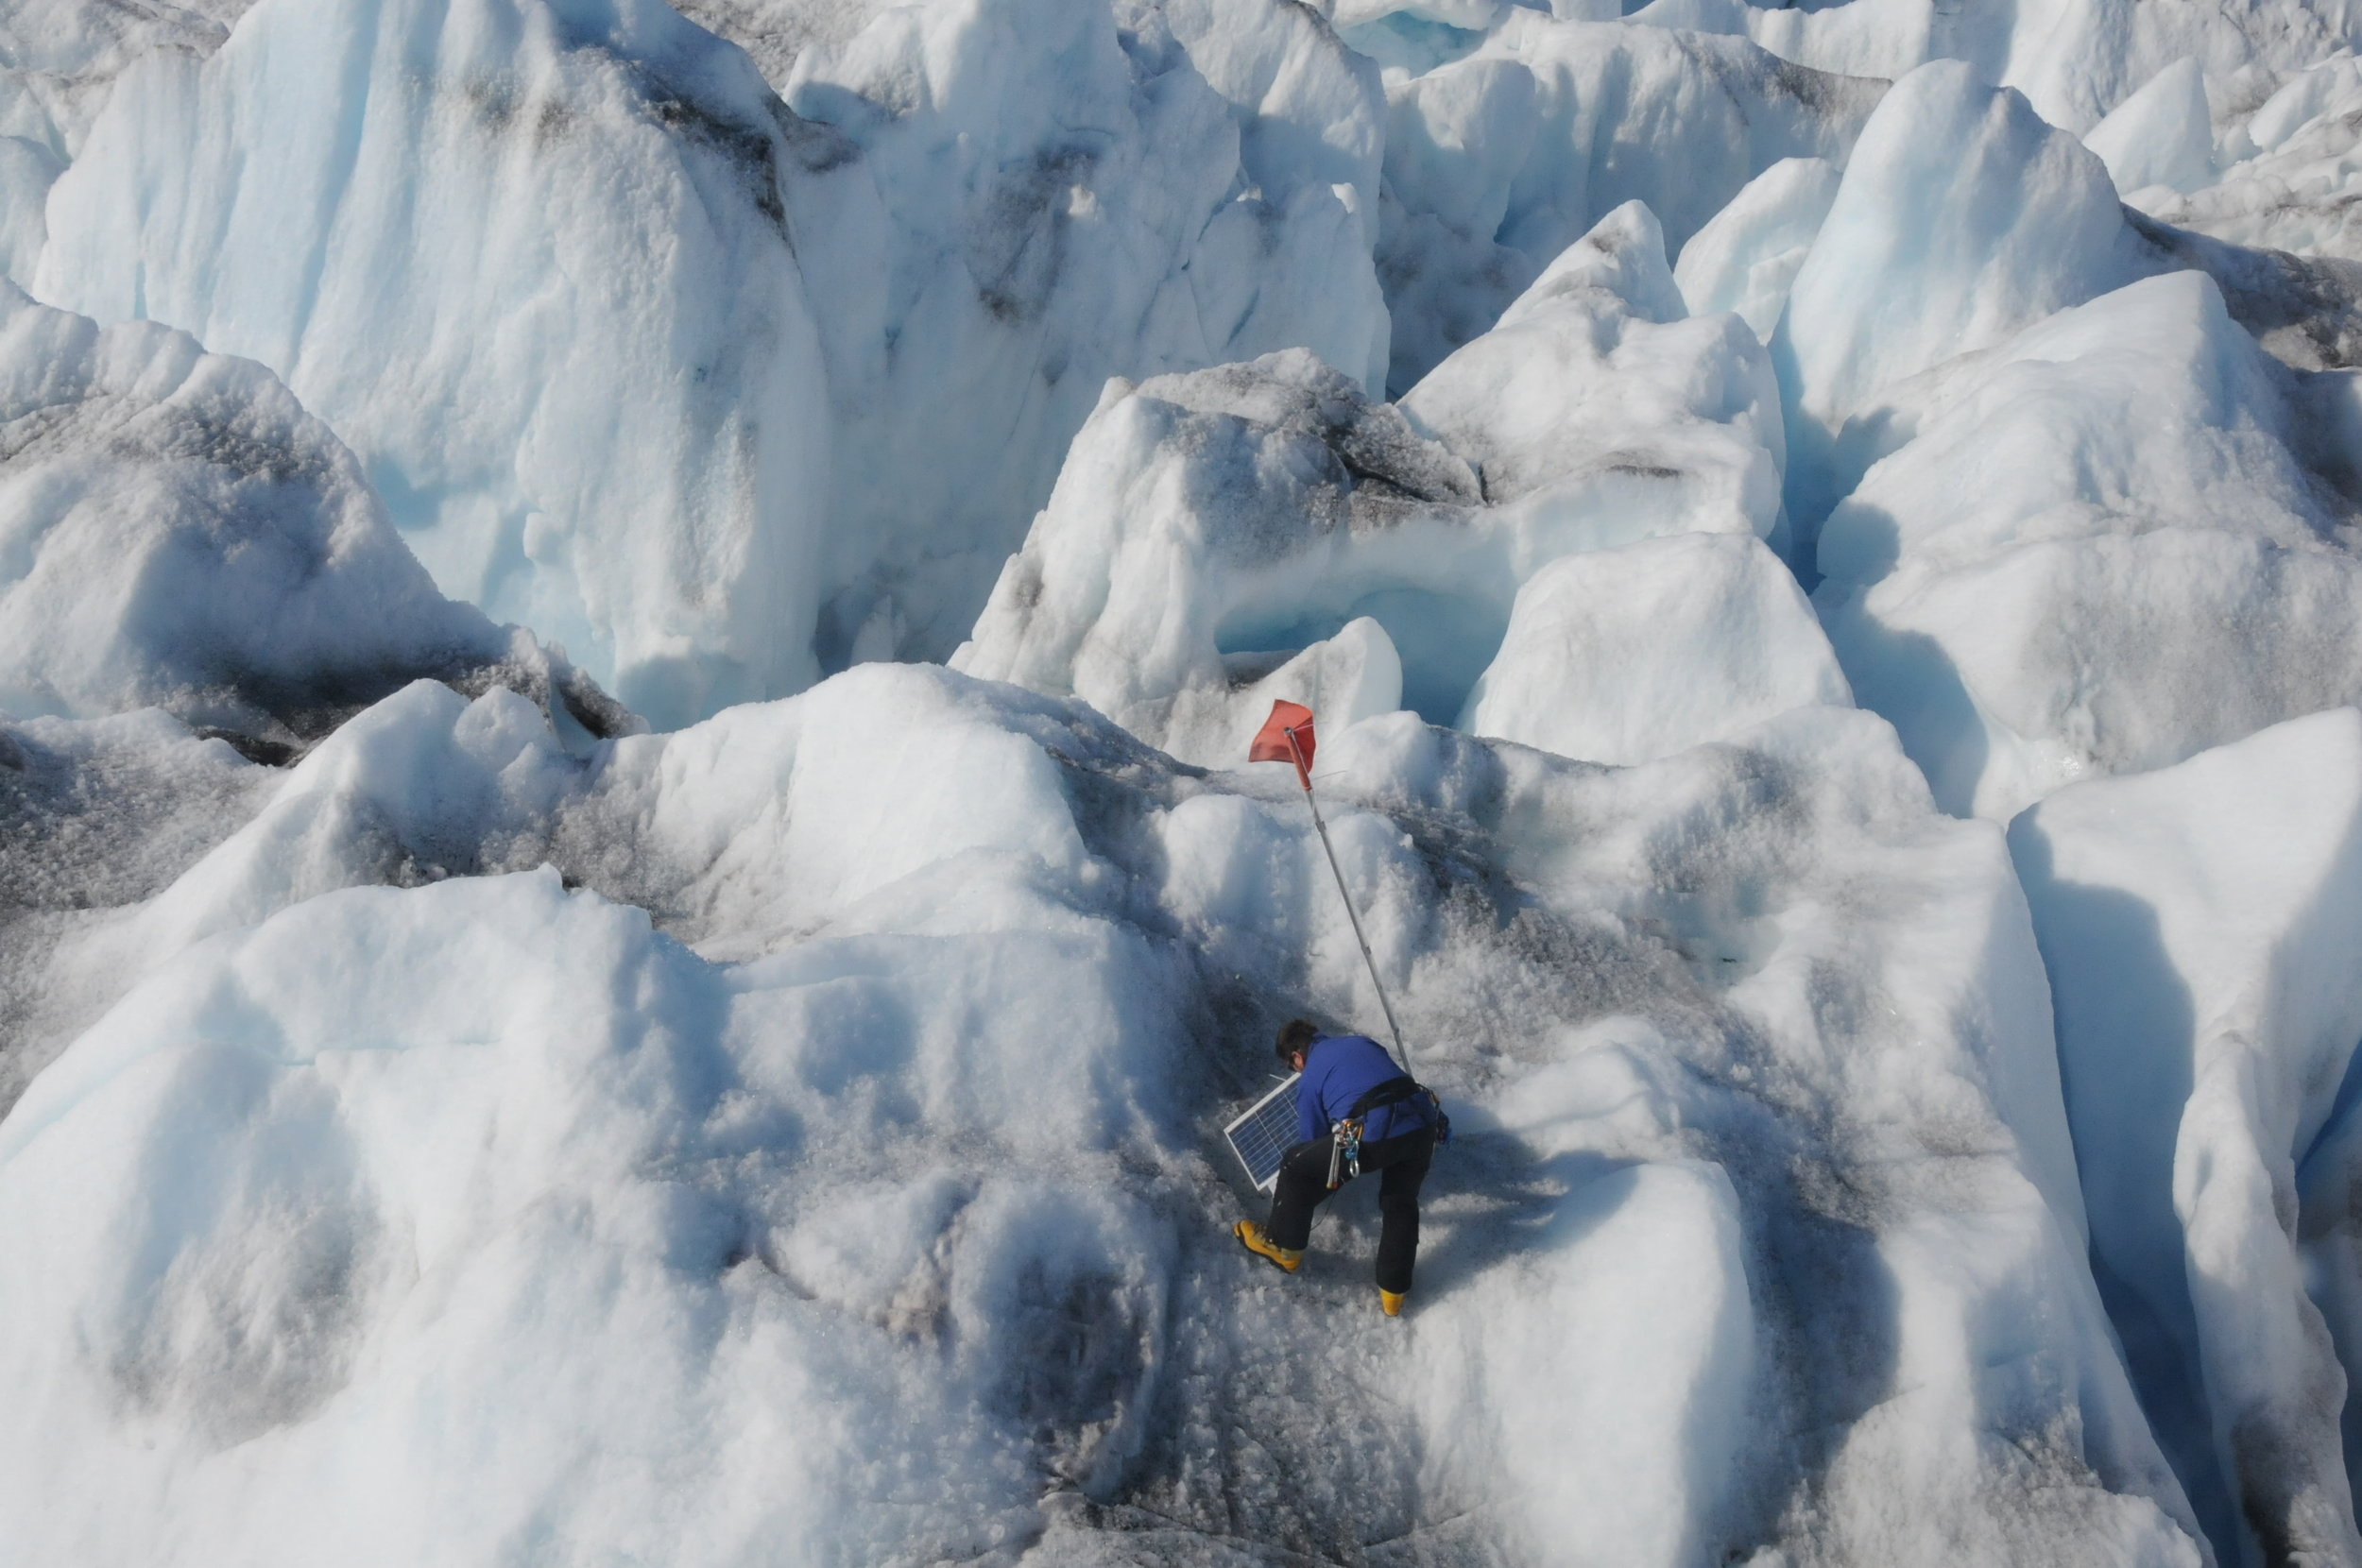 Gordon Hamilton (PI from University of Maine) recovers a GPS instrument from Helheim Glacier during summer 2009 field work. Photo: Leigh Stearns